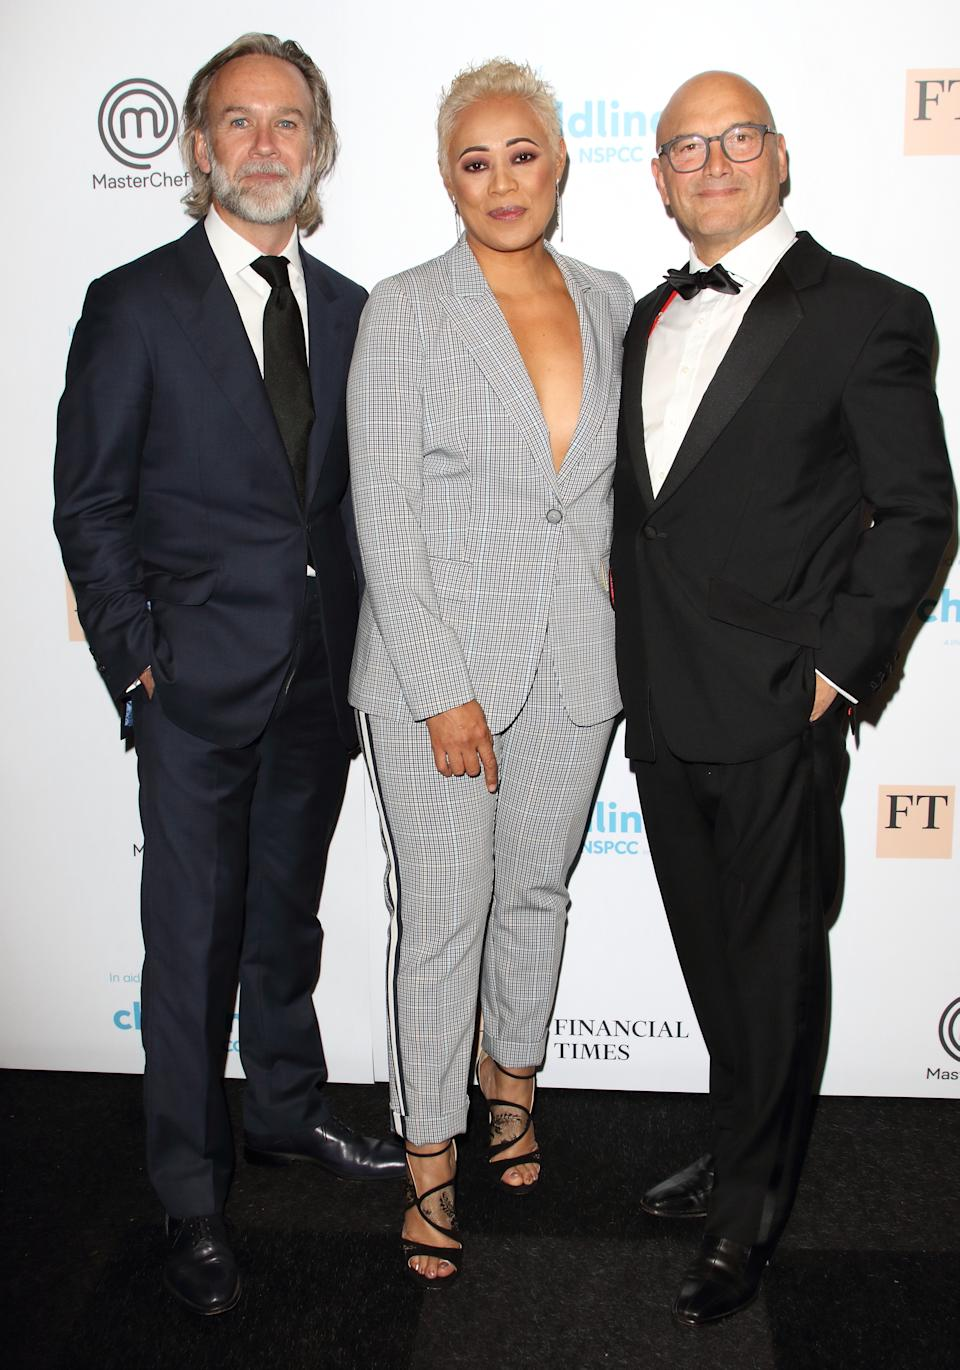 LONDON, UNITED KINGDOM - 2019/09/26: Marcus Wareing, Monica Galetti and Gregg Wallace attend The Childline Ball 2019 partnered with MasterChef for this year's theme at Old Billingsgate in London. (Photo by Keith Mayhew/SOPA Images/LightRocket via Getty Images)